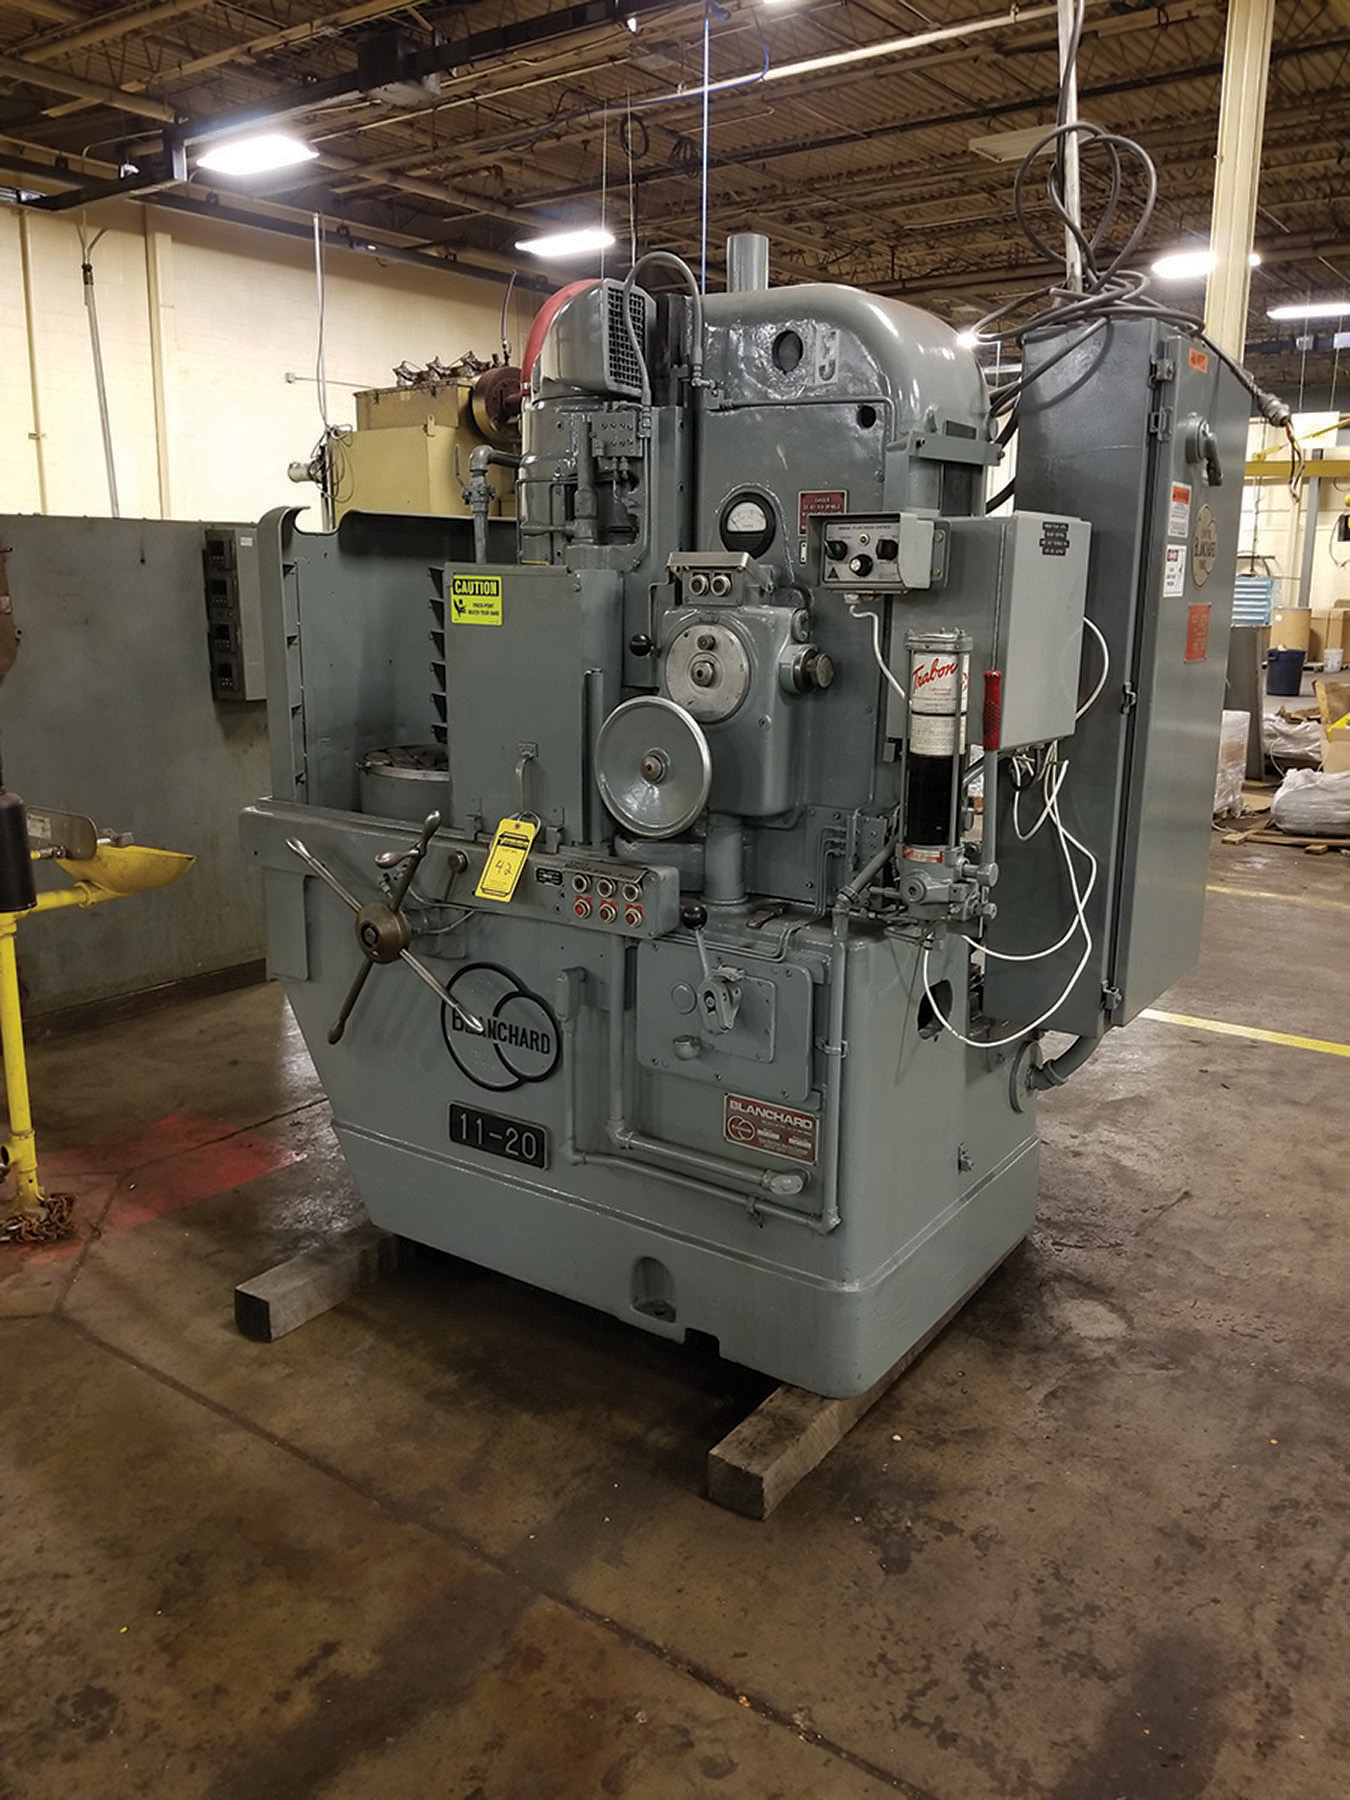 Lot 42 - BLANCHARD 11-20 20'' VERTICAL SPINDLE ROTARY SURFACE GRINDER -MAGNETIC CHUCK CONTROL, REFURBISHED,